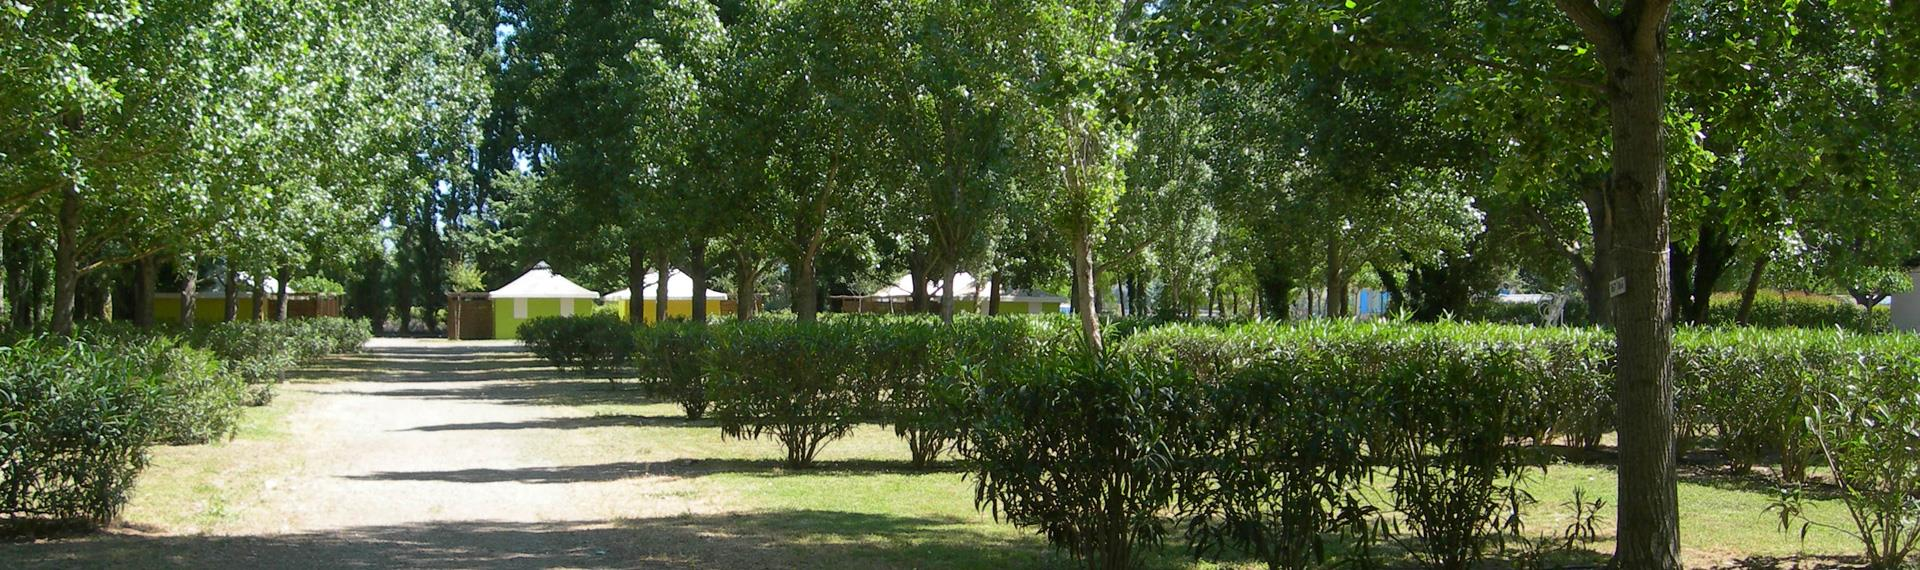 Camping village *** La Gabinelle, campsite near Valras: mobile homes for hire near Béziers